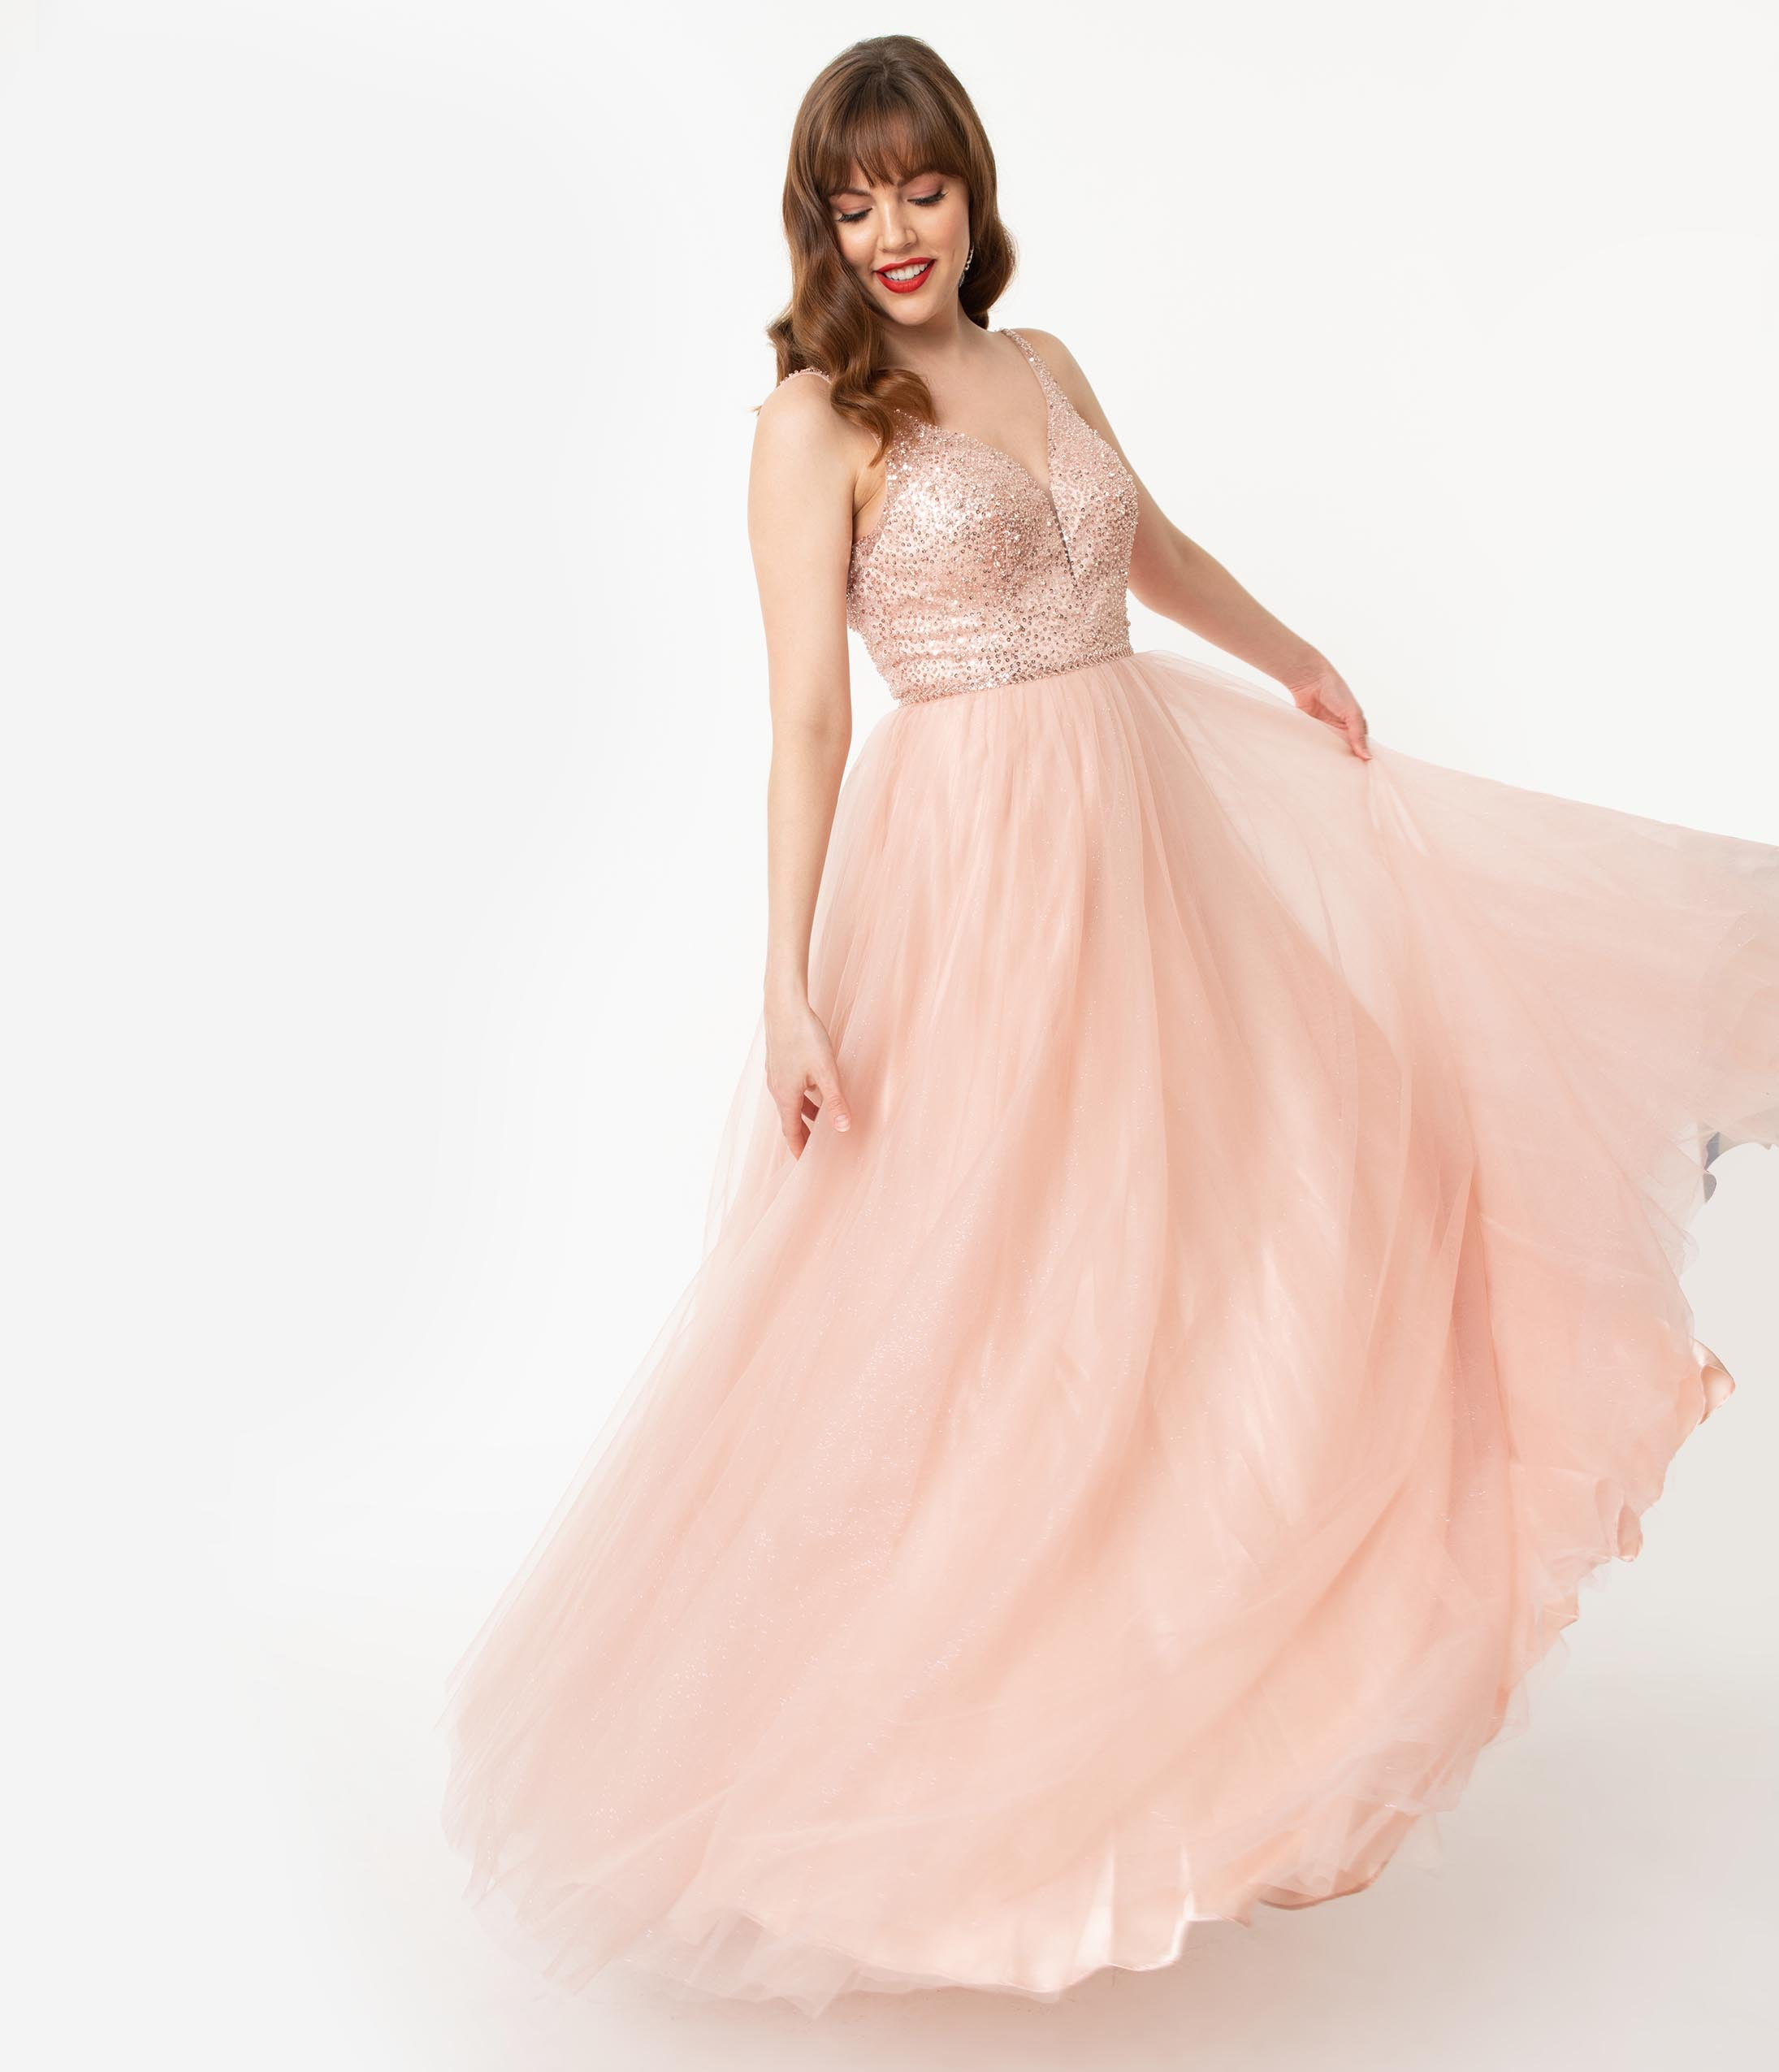 1950s Formal Dresses & Evening Gowns to Buy Blush Pink Glitter  Beaded Long Gown $180.00 AT vintagedancer.com